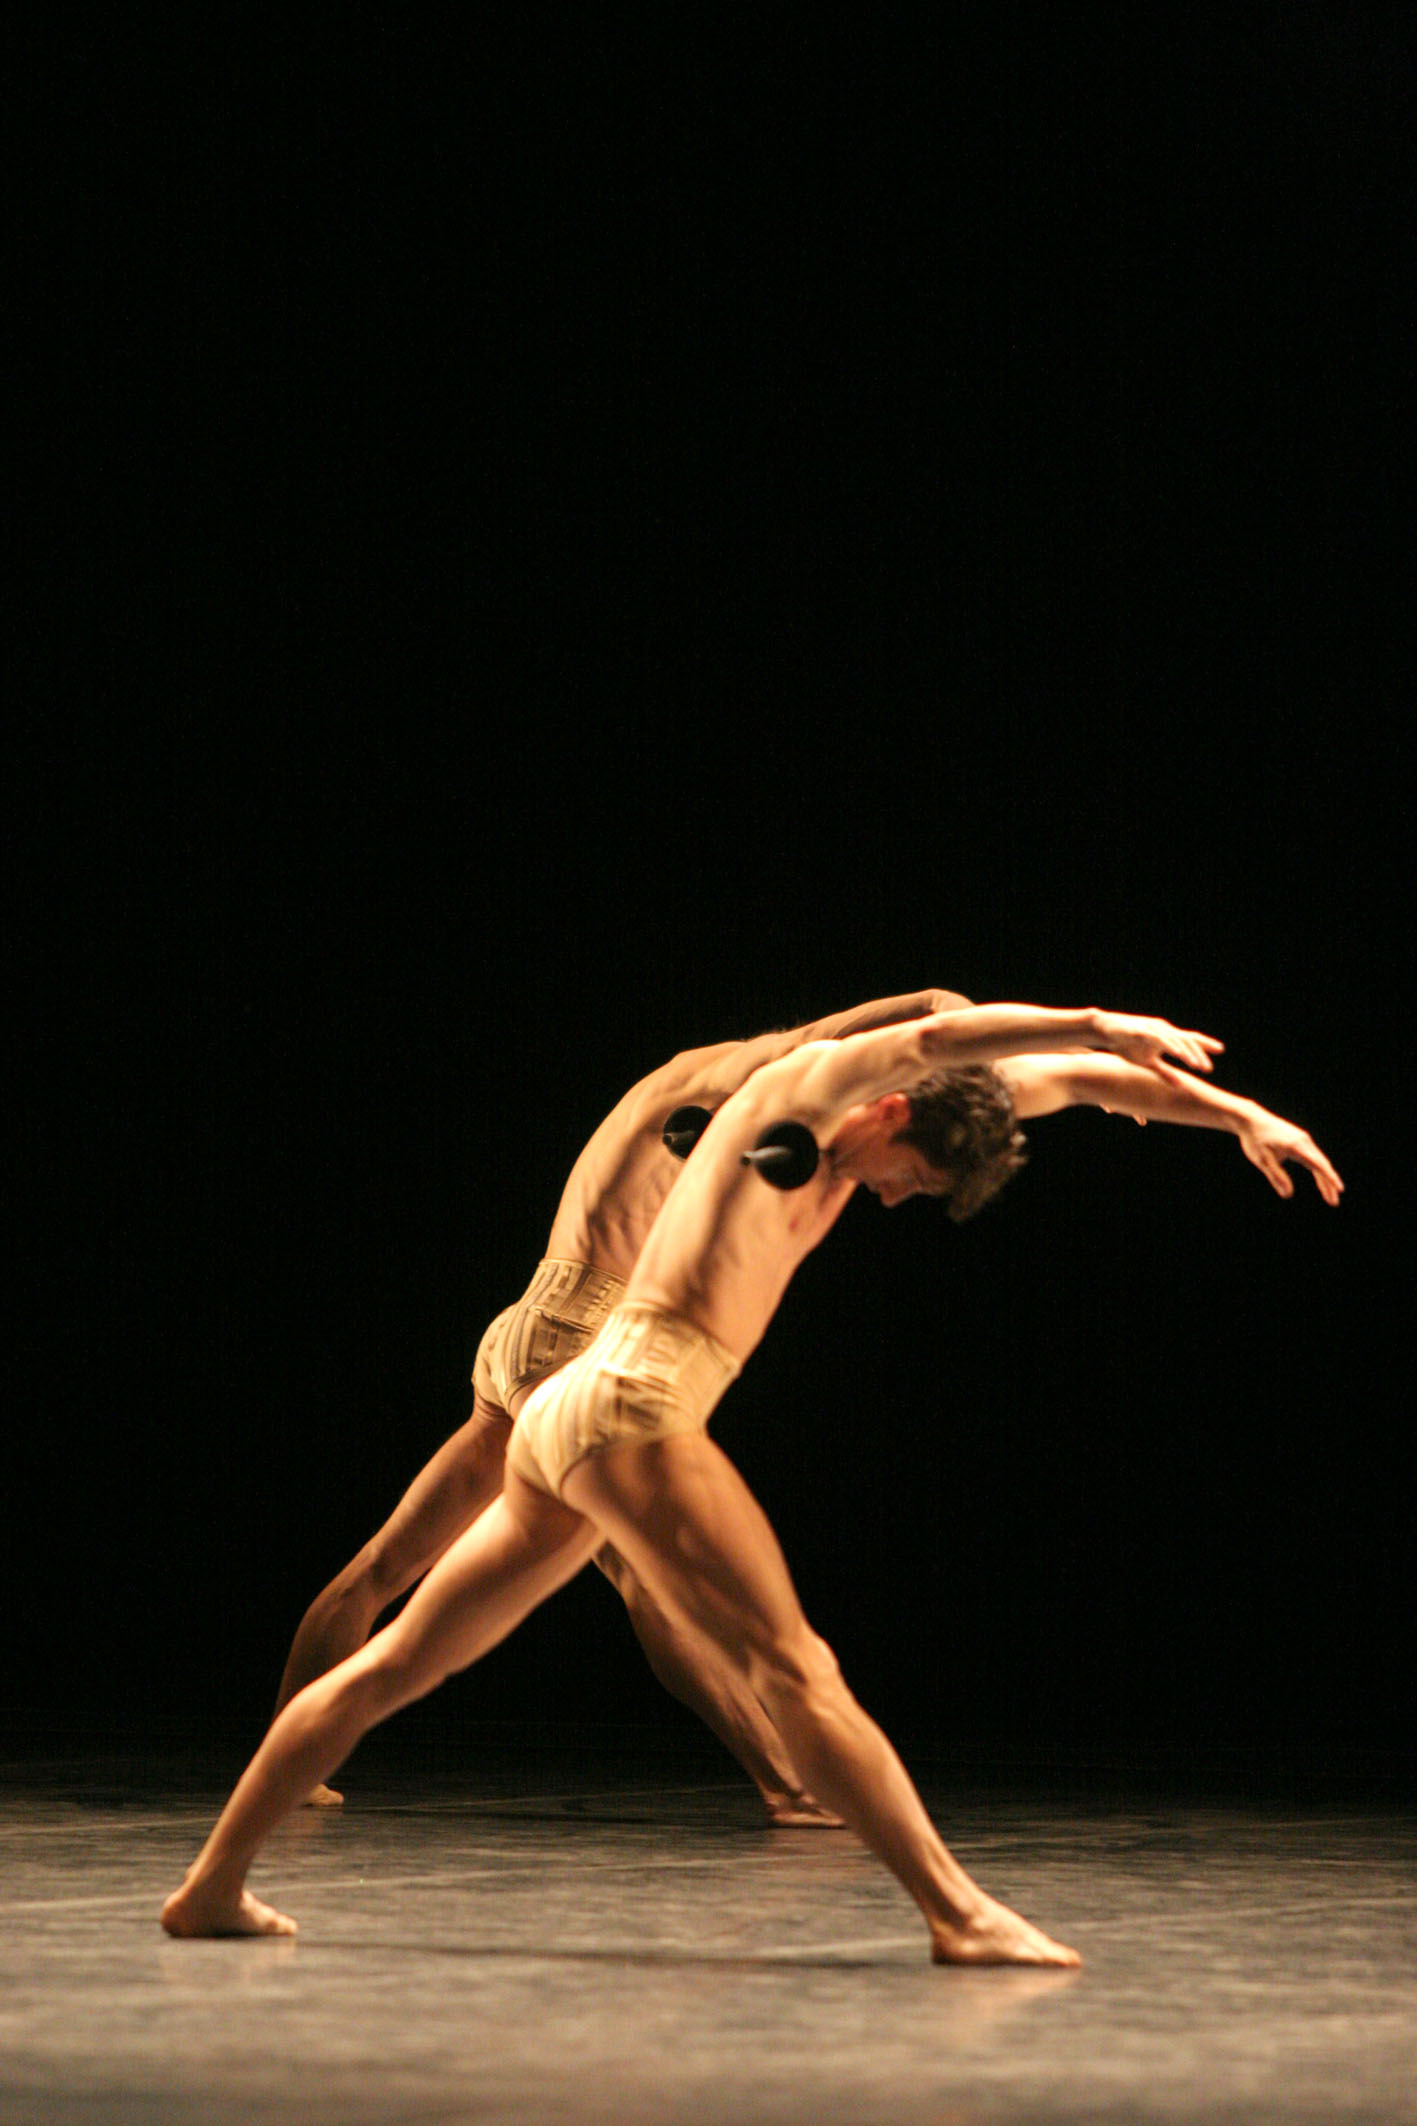 propedeutica danza alla scala milan - photo#20